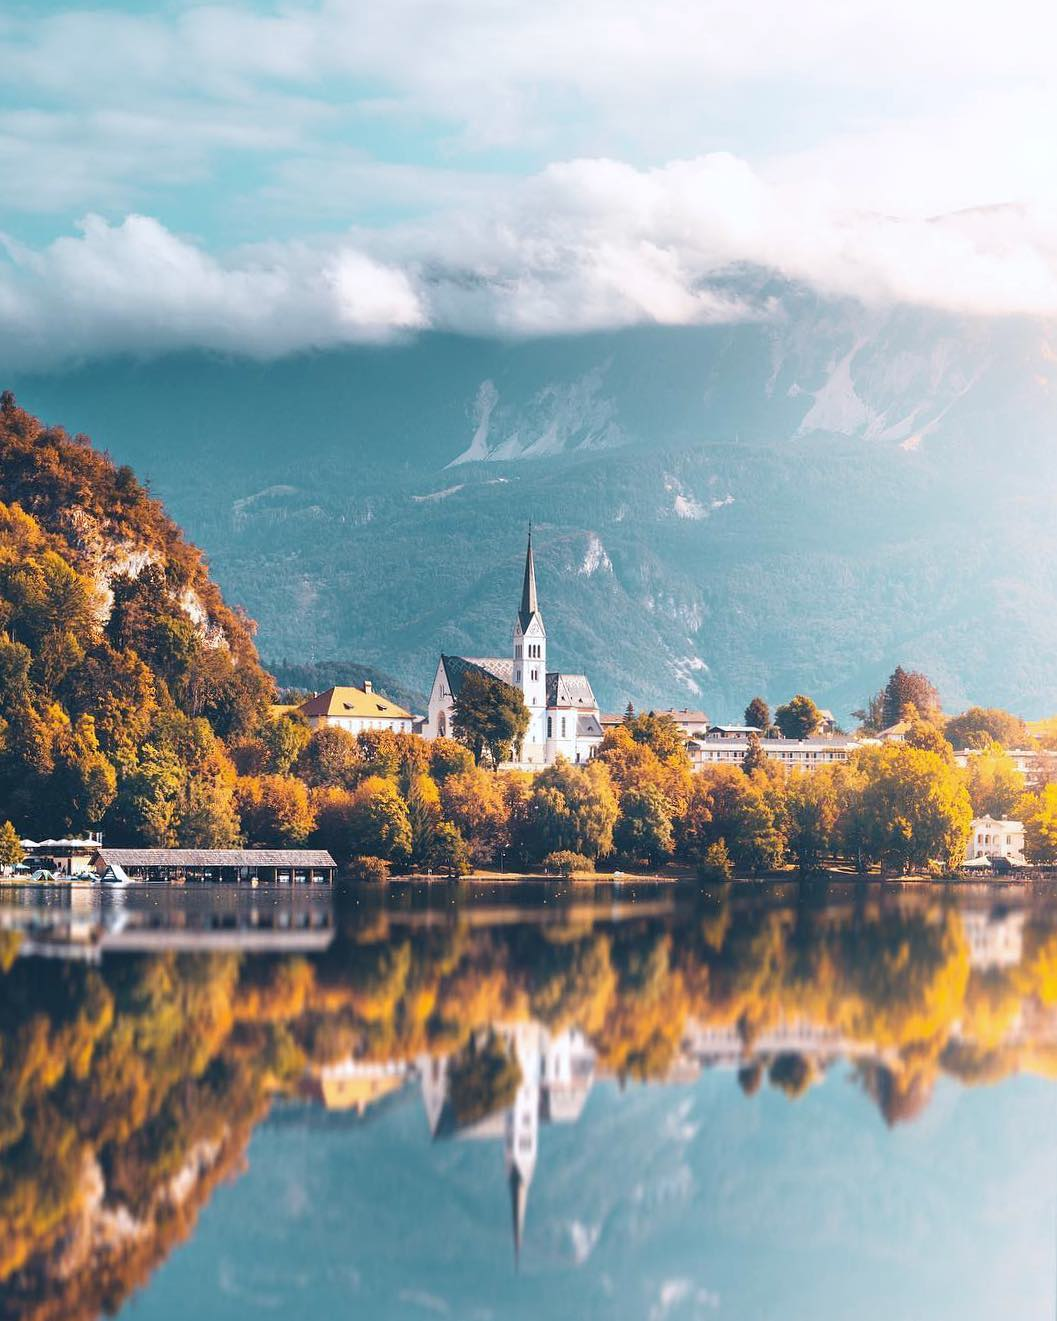 A morning walk by the lake?  . This is a slightly different view from Lake Bled as we're used to. . Tell us; what is your favourite memory from this magical place? ️ . Thanks @yantastic for sharing your photo with #ifeelsLOVEnia.